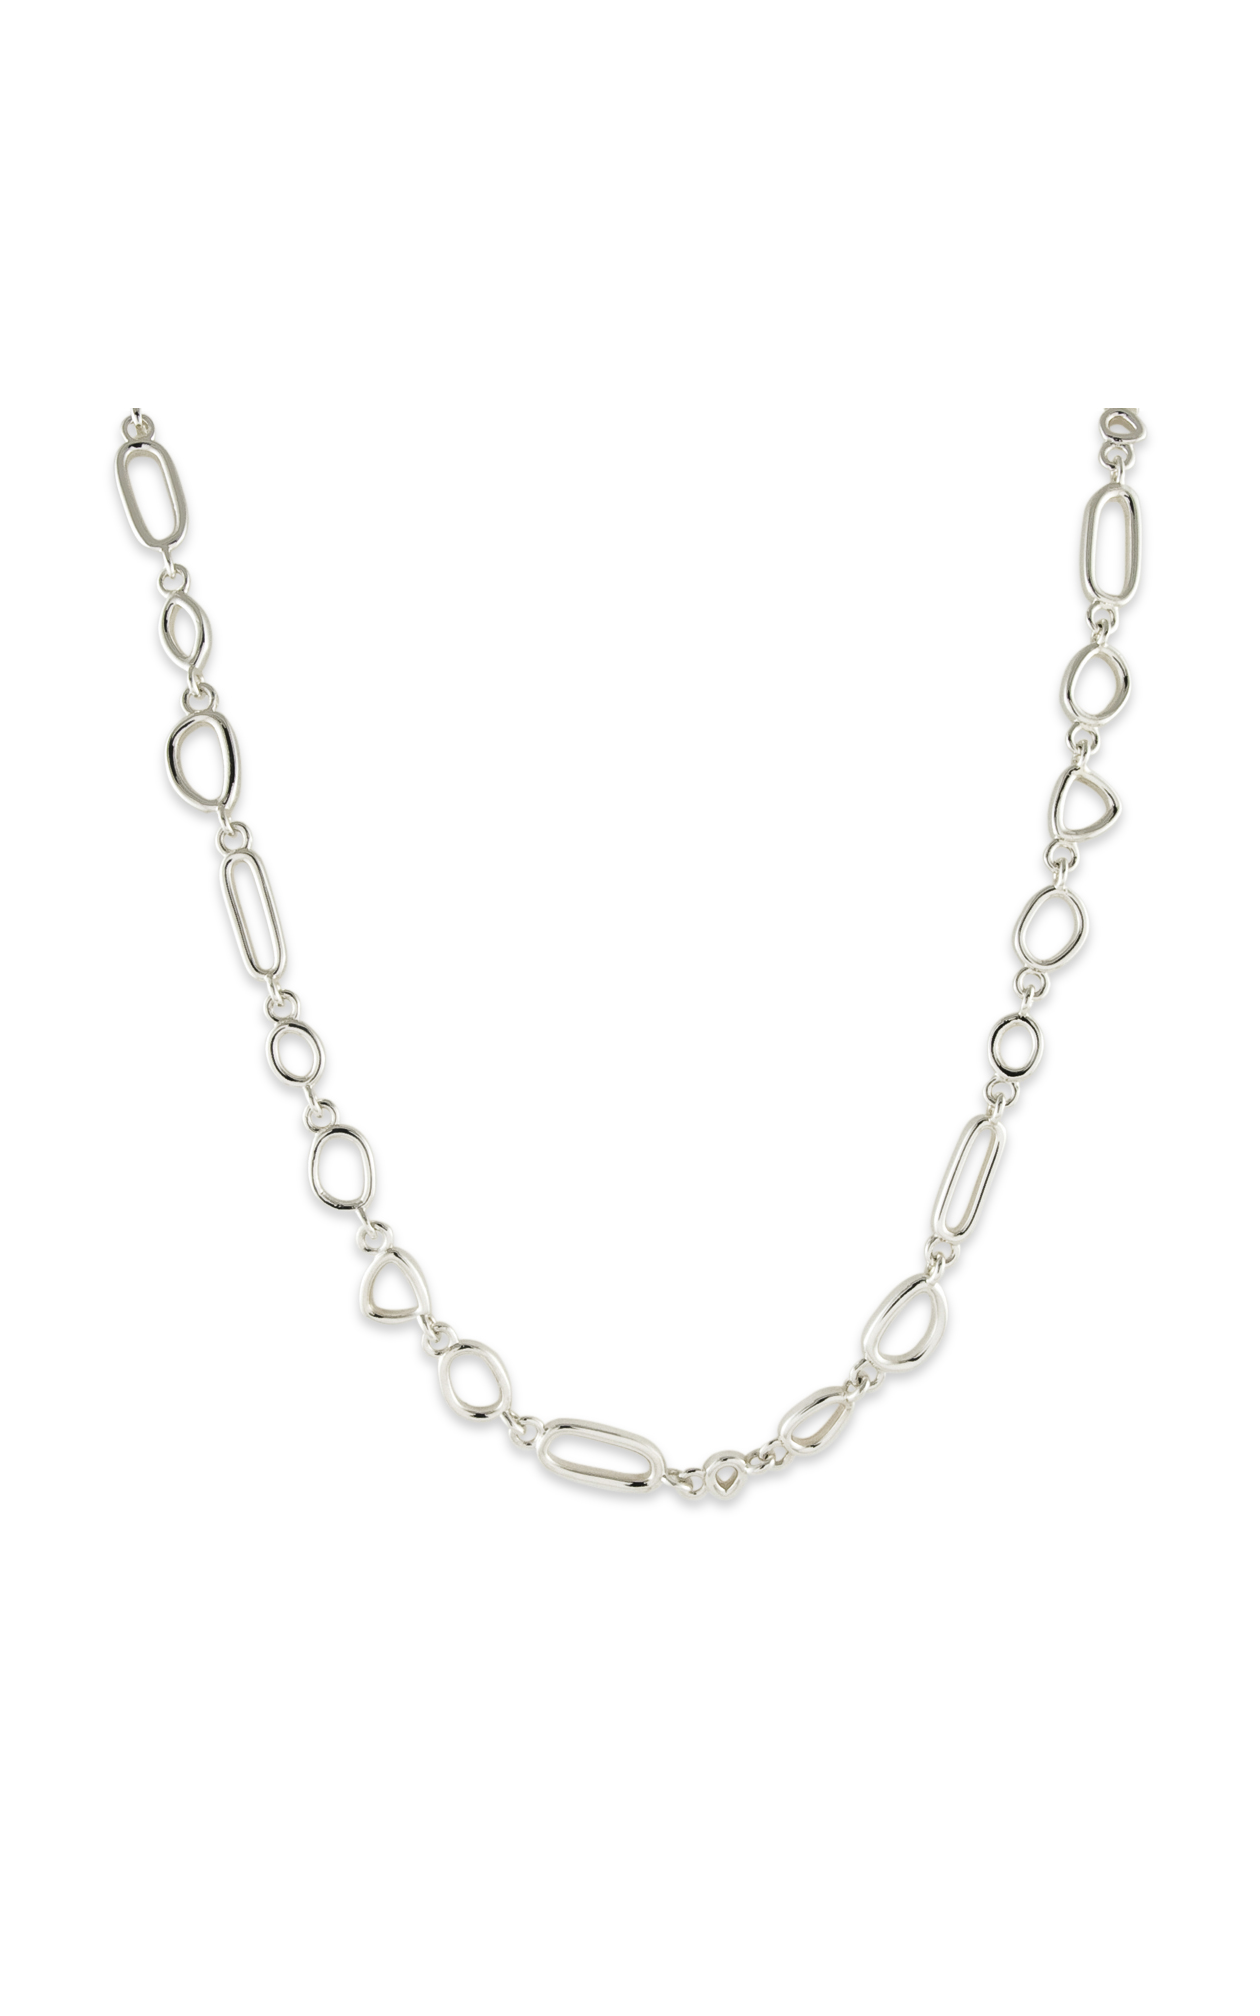 Zina Touchstone Necklace A1367-17 product image